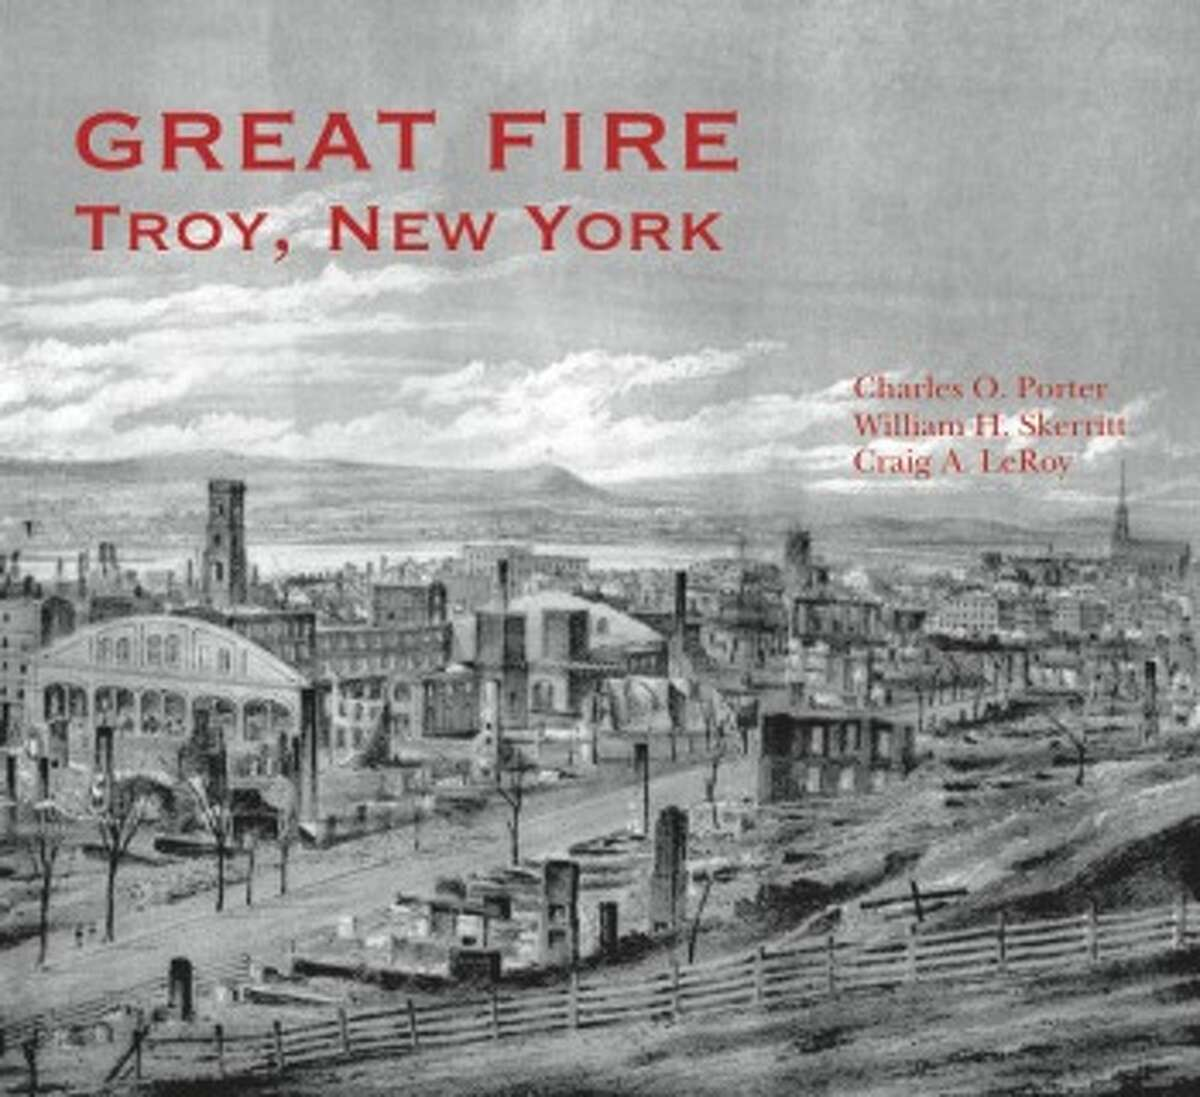 TROY, May 10, 1862. Sparks from a train leaving Troy and crossing the covered Green Island Bridge set the wooden structure on fire. Gale-force winds created a firestorm, leaving downtown's 4th Ward a charred landscape of 75 acres where 670 buildings once stood. About eight people died, according to historians. This photo shows downtown before the Great Fire.Read the story here.